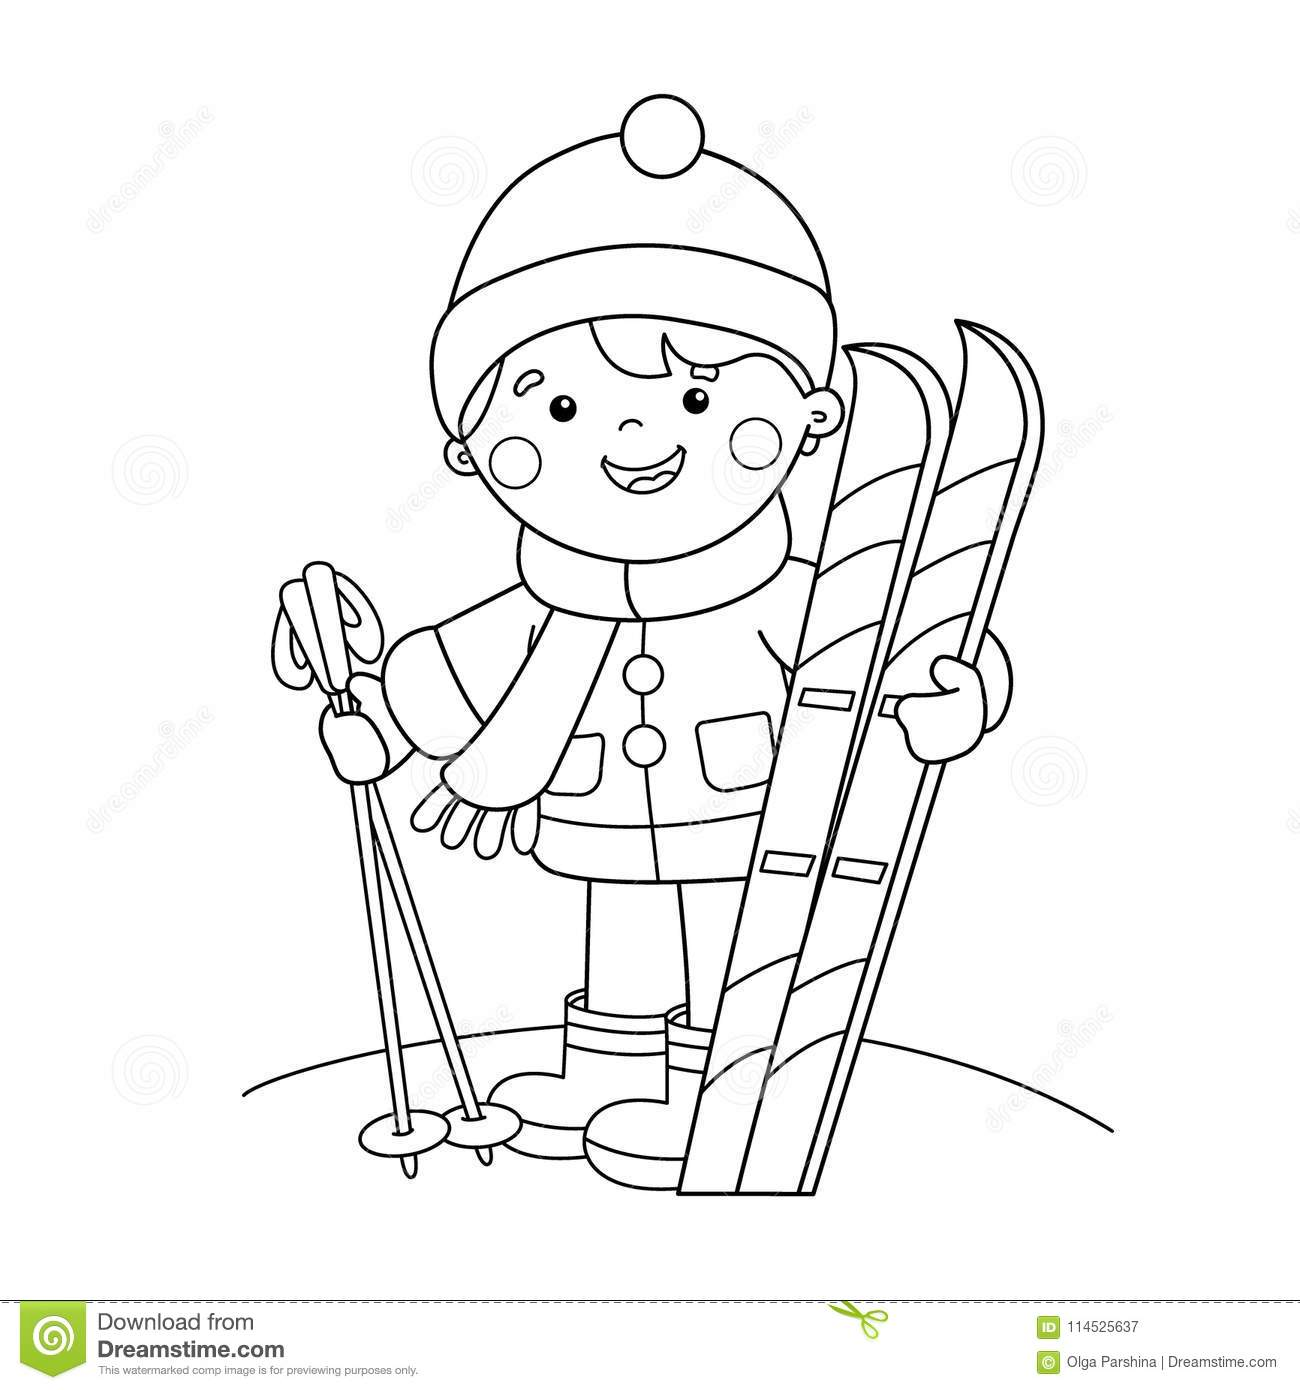 Coloring Page Outline Of Cartoon Boy With Skis. Winter Sports. Stock ...